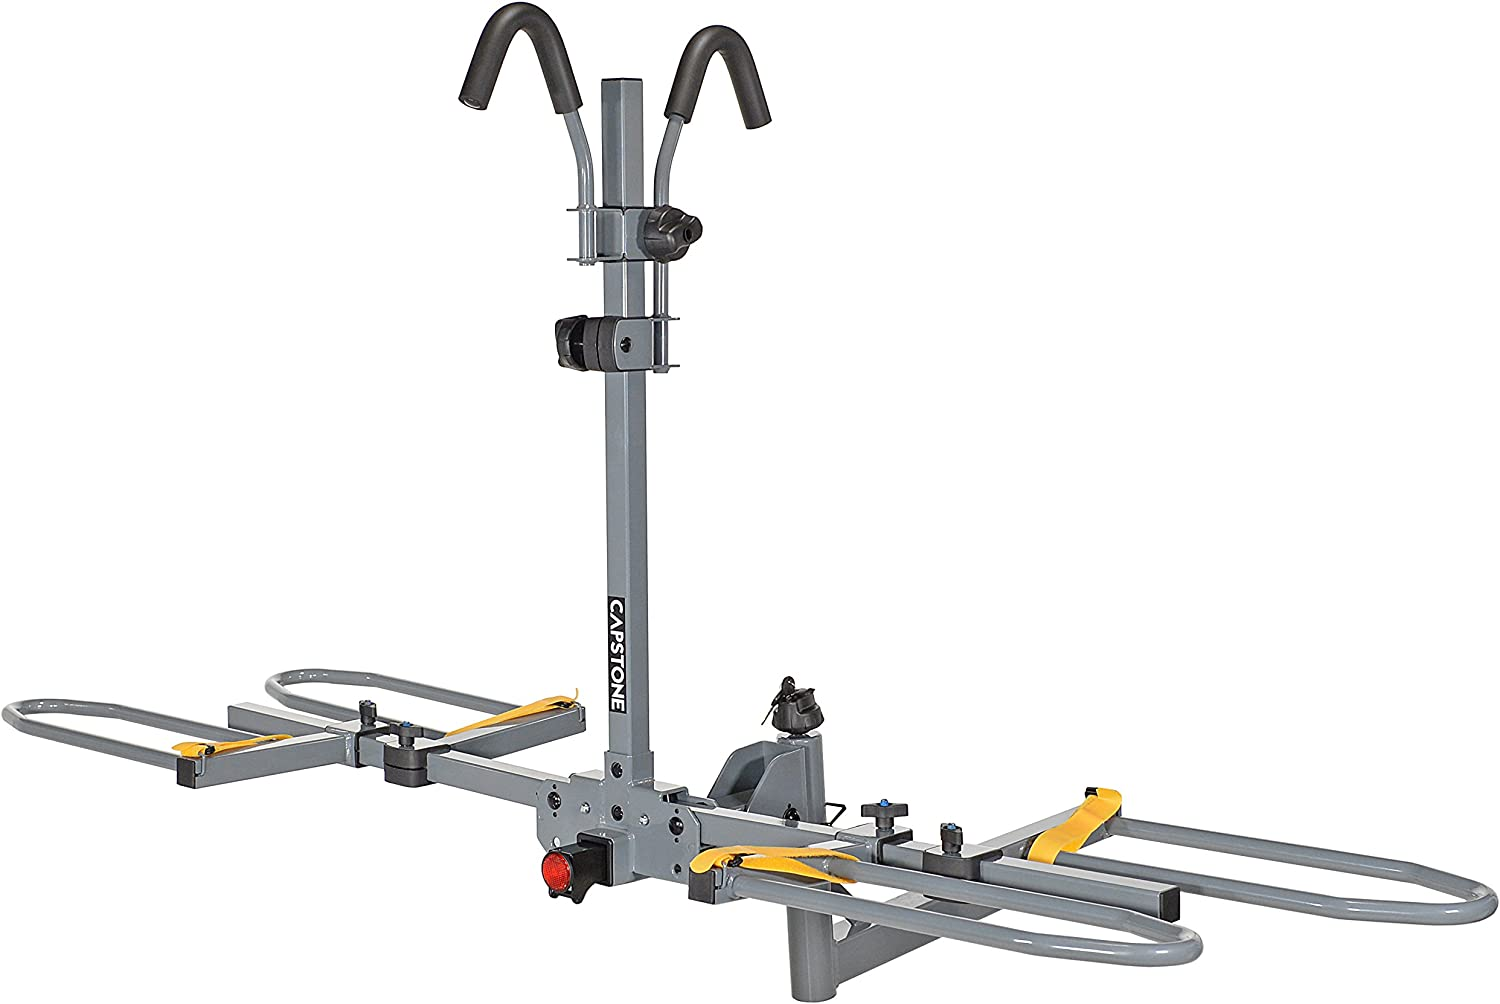 Capstone Hitch Mount Carrier 2 Max 40% OFF Sales of SALE items from new works Bike